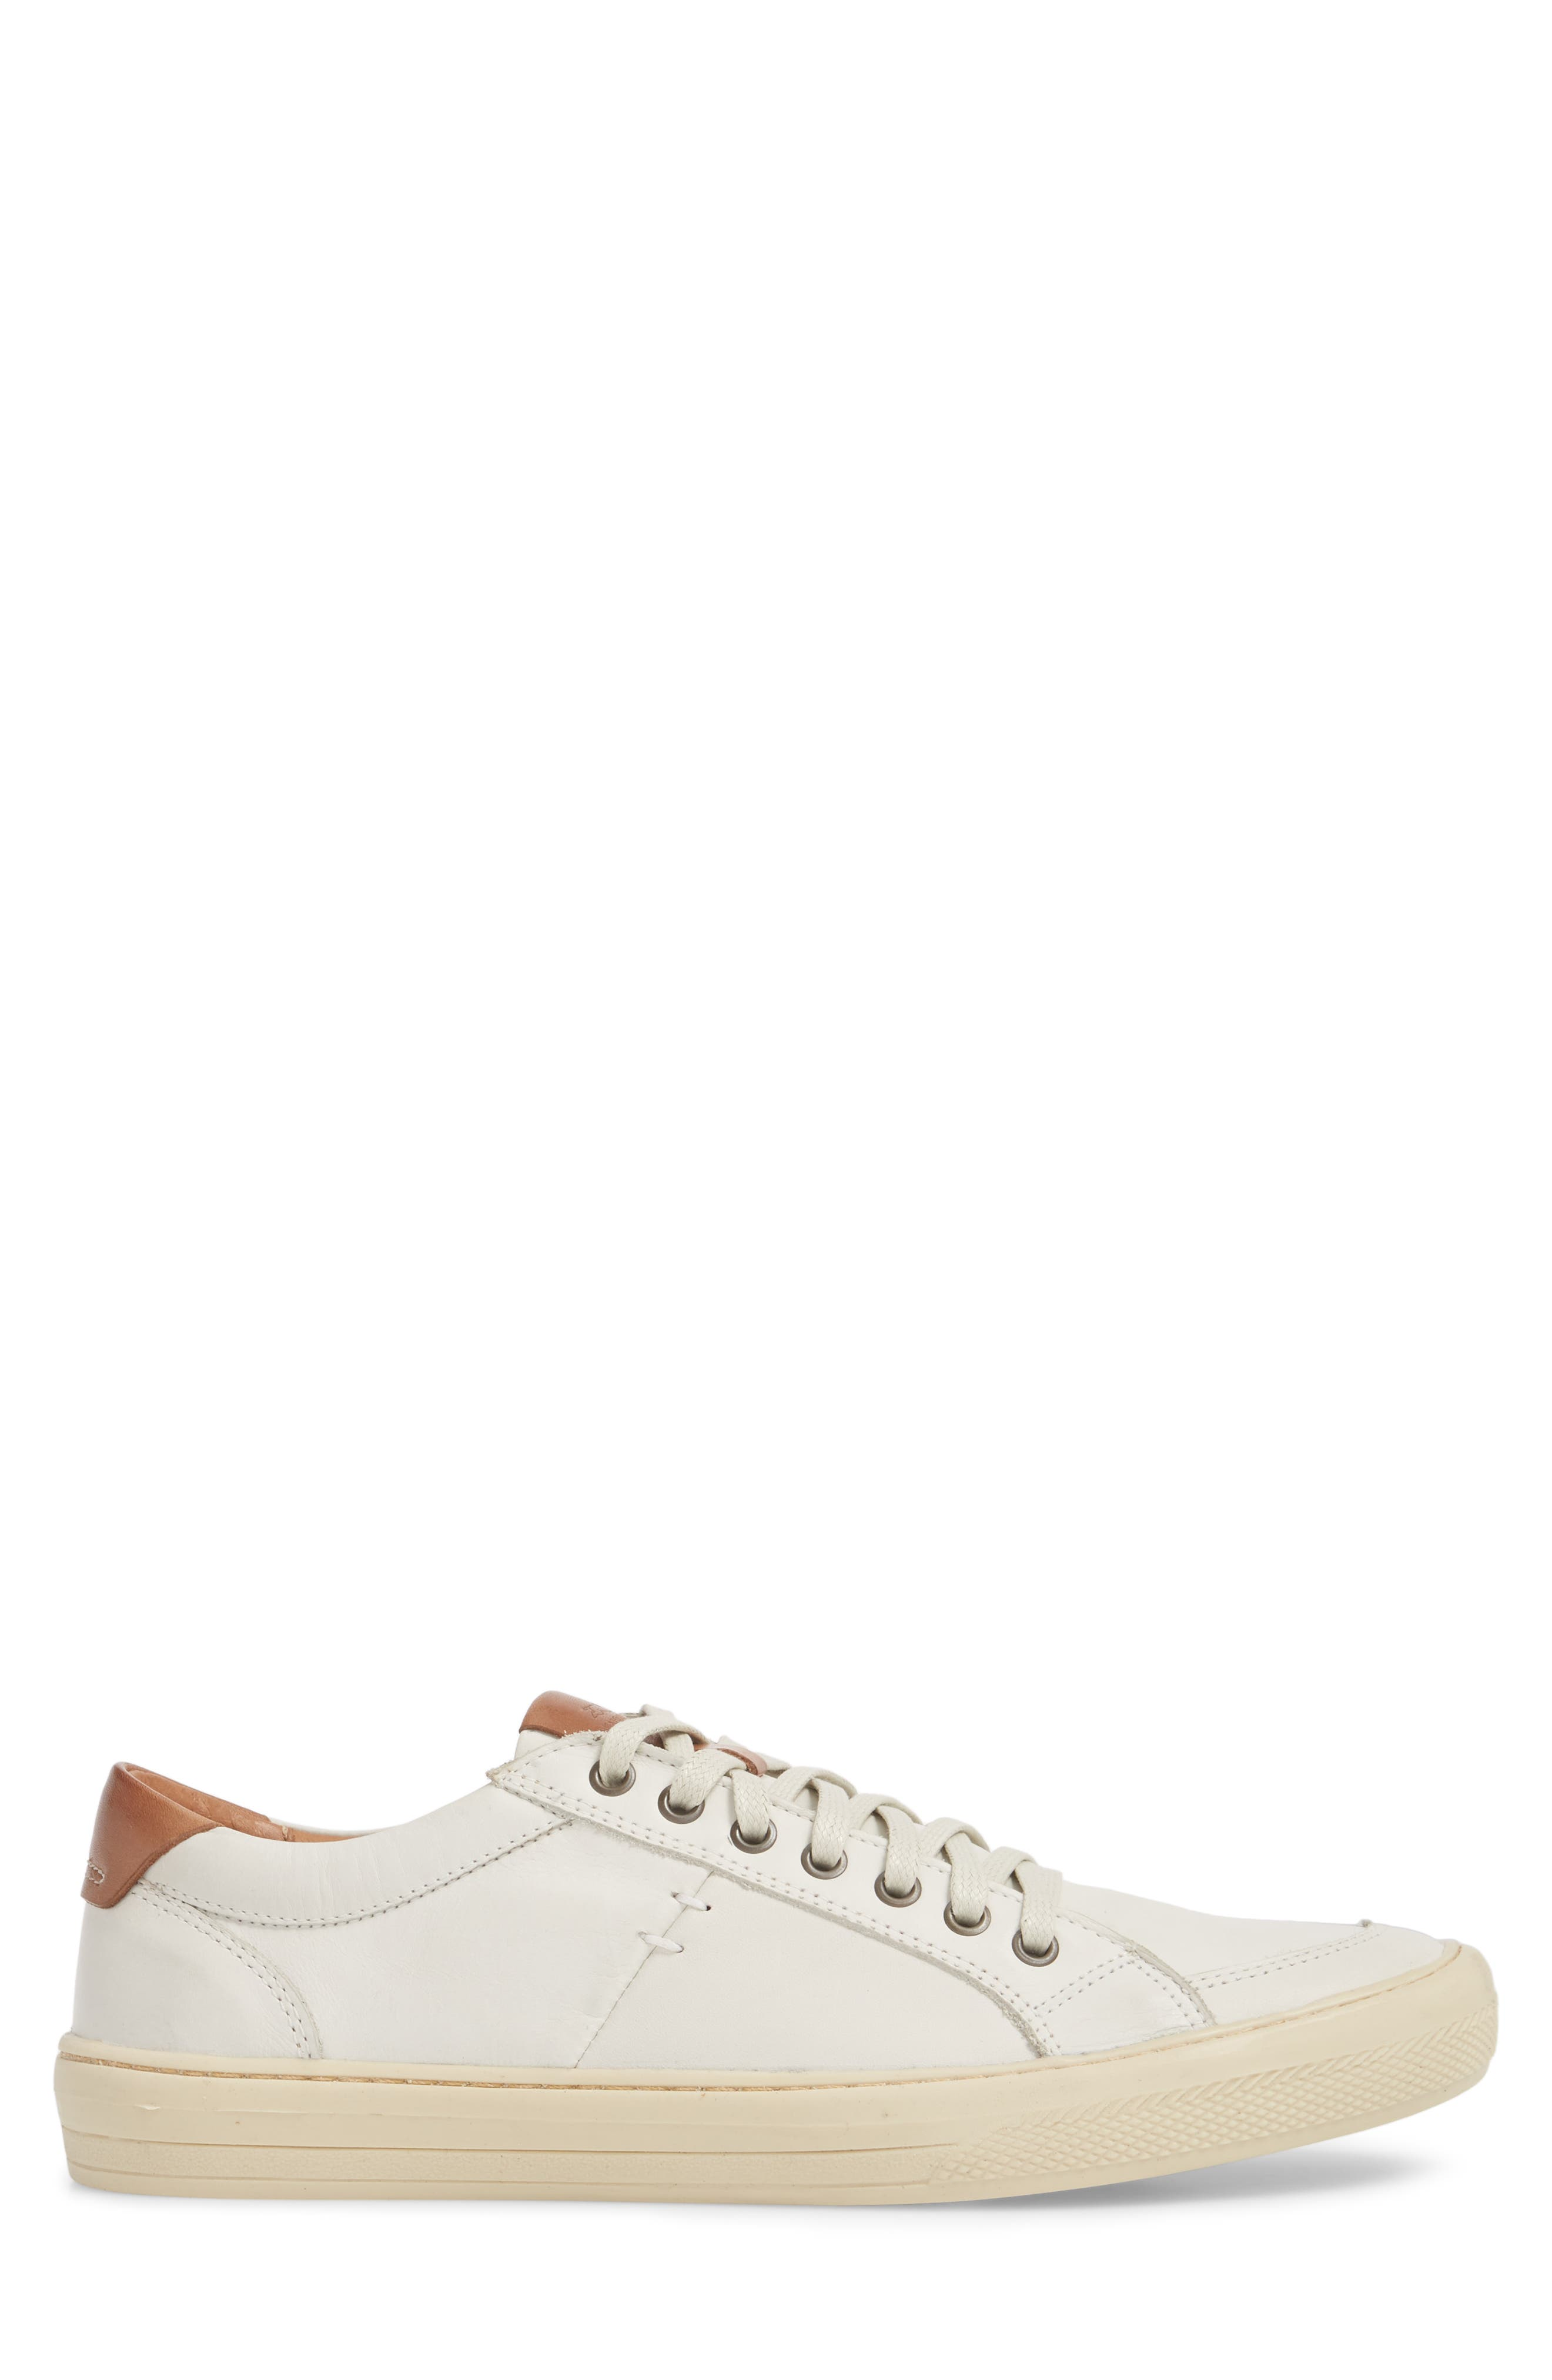 Bilac Low Top Sneaker,                             Alternate thumbnail 3, color,                             Touch Ice/ Bronze Leather